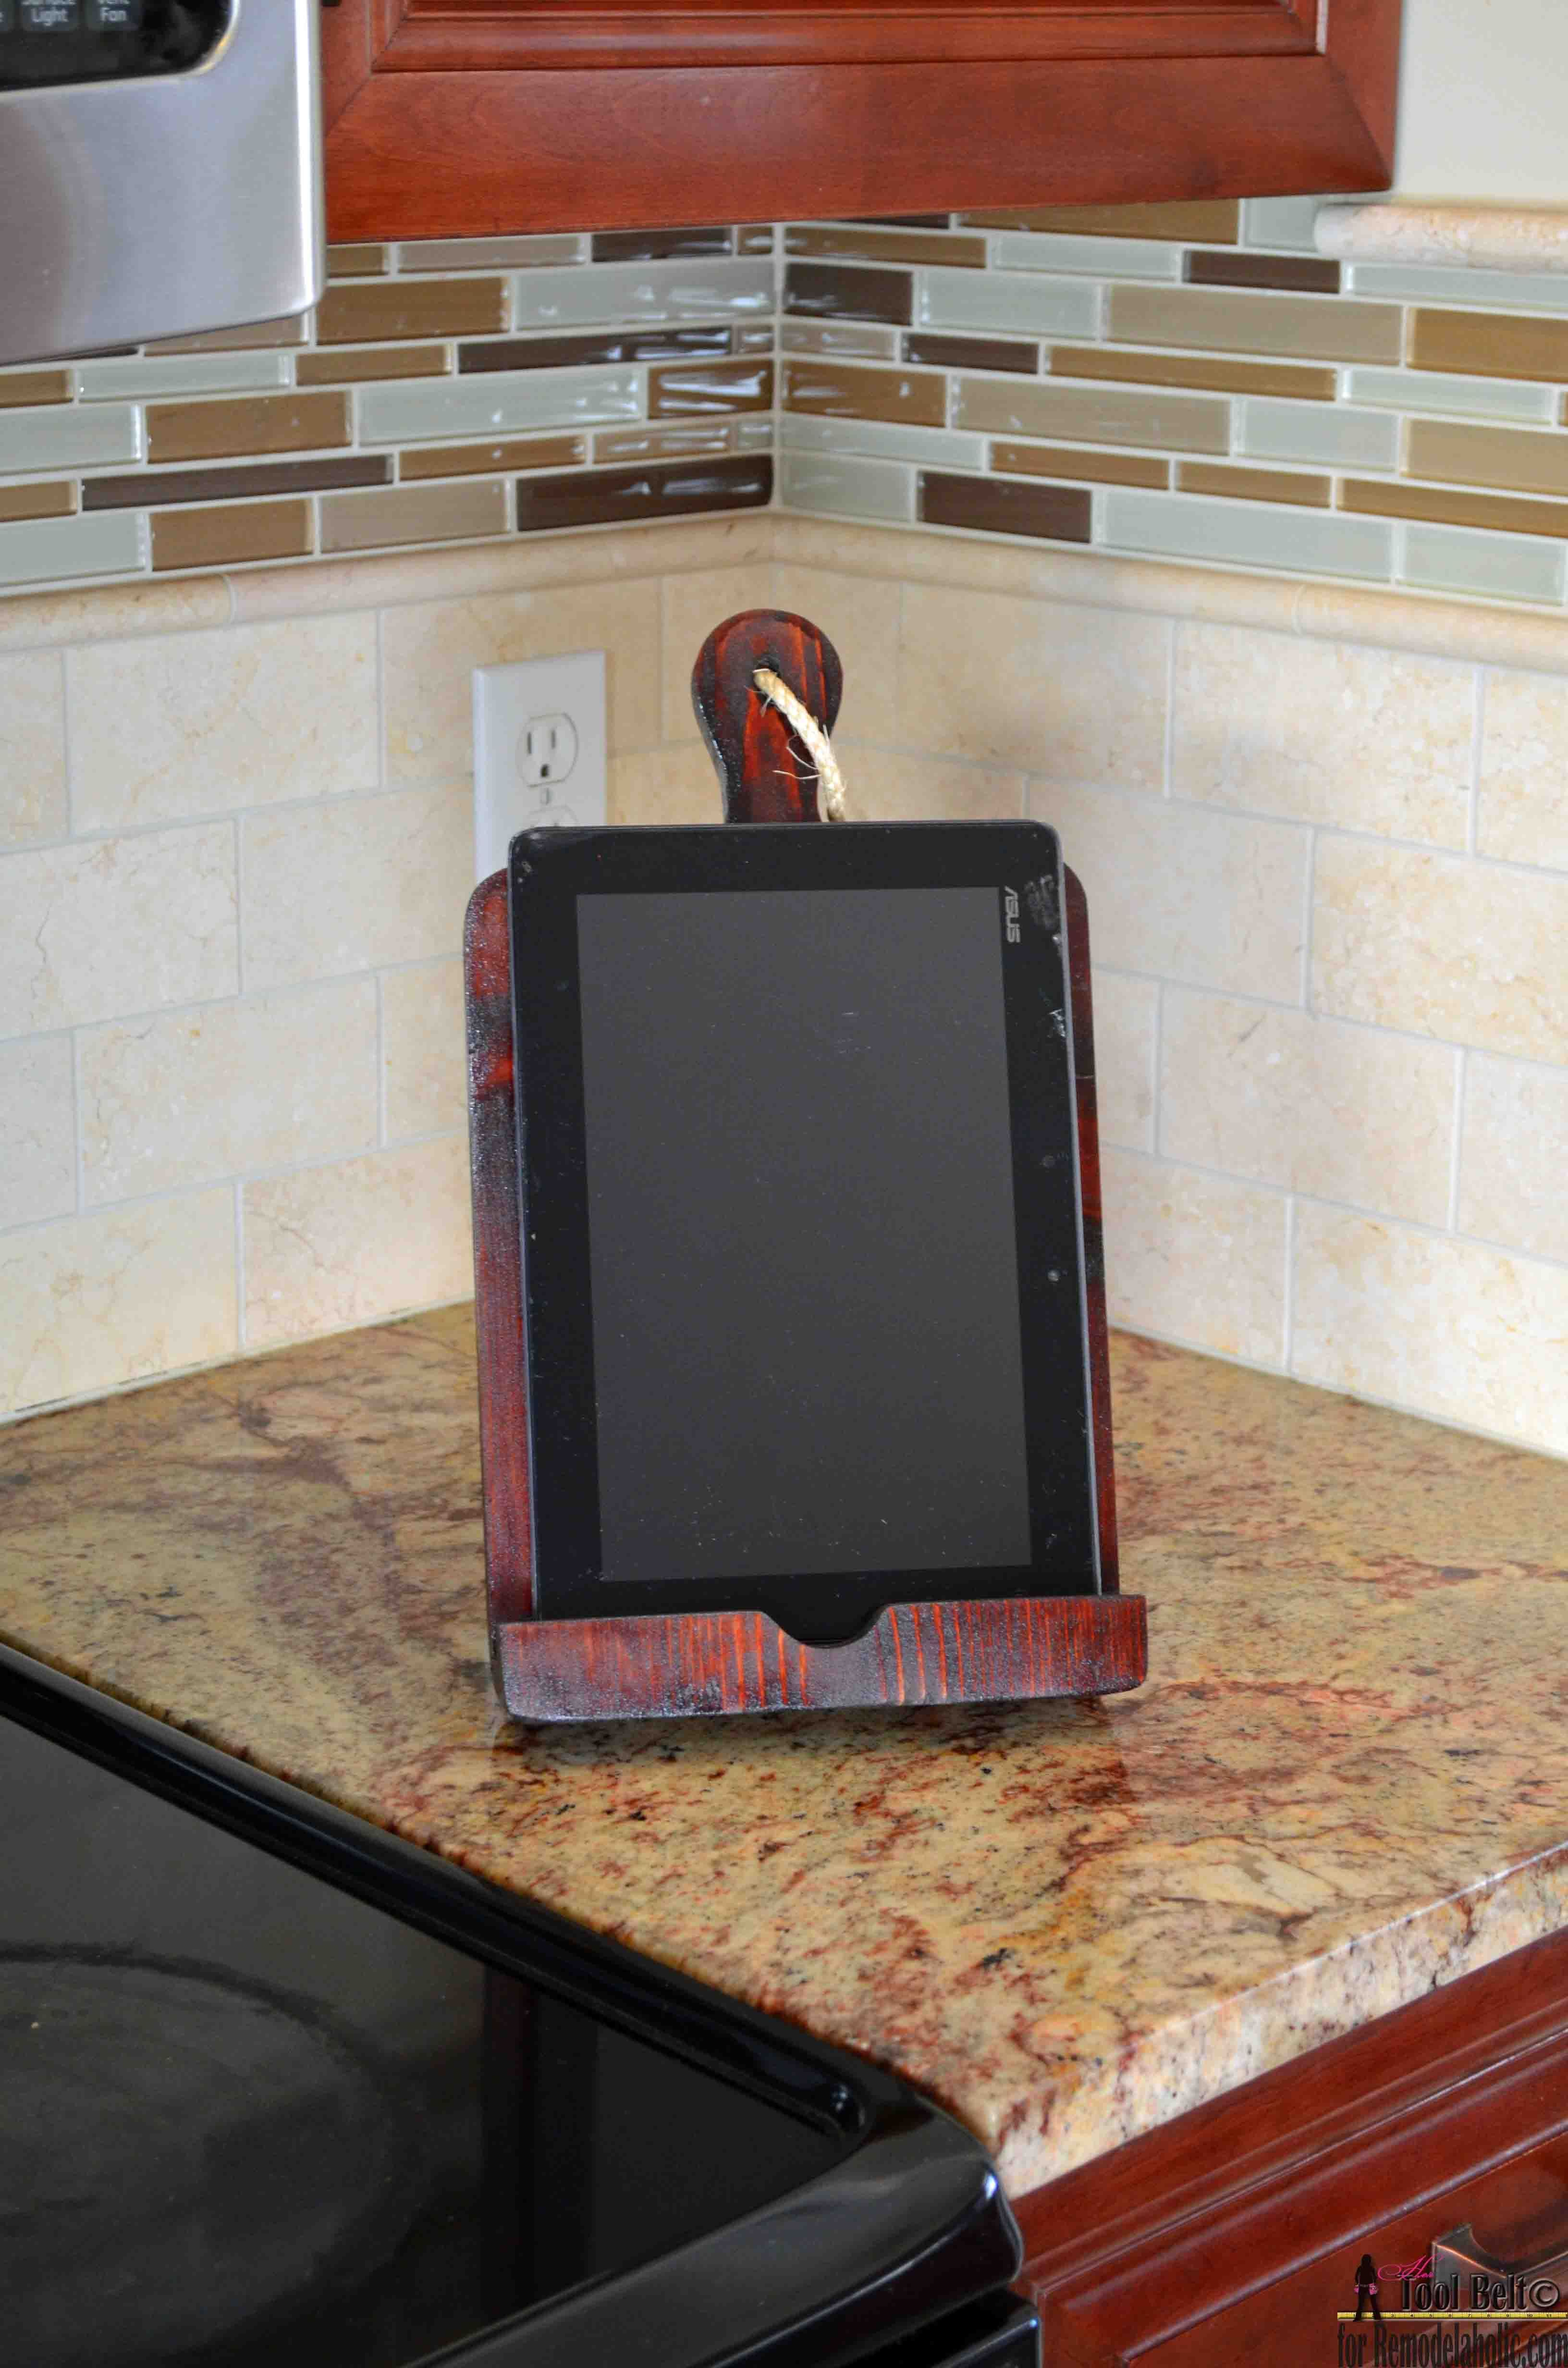 Tablet stand for kitchen  If you like cooking using online recipes a tablet holder or Ipad